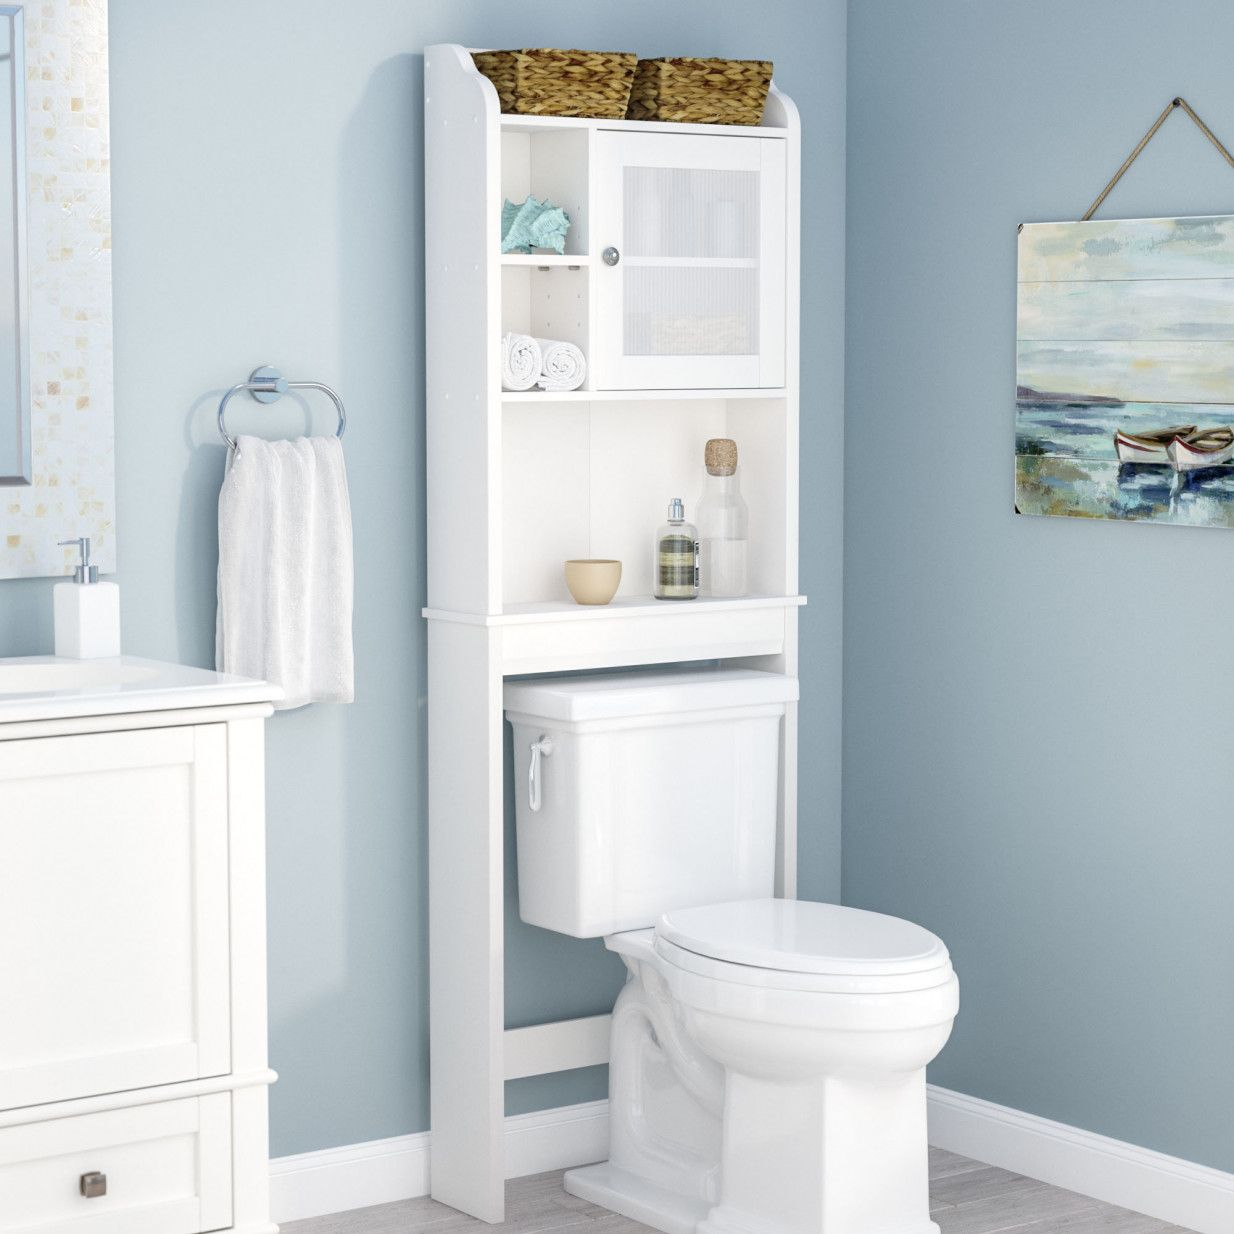 2019 Bathroom Cabinet Over toilet - Neutral Interior Paint Colors ...